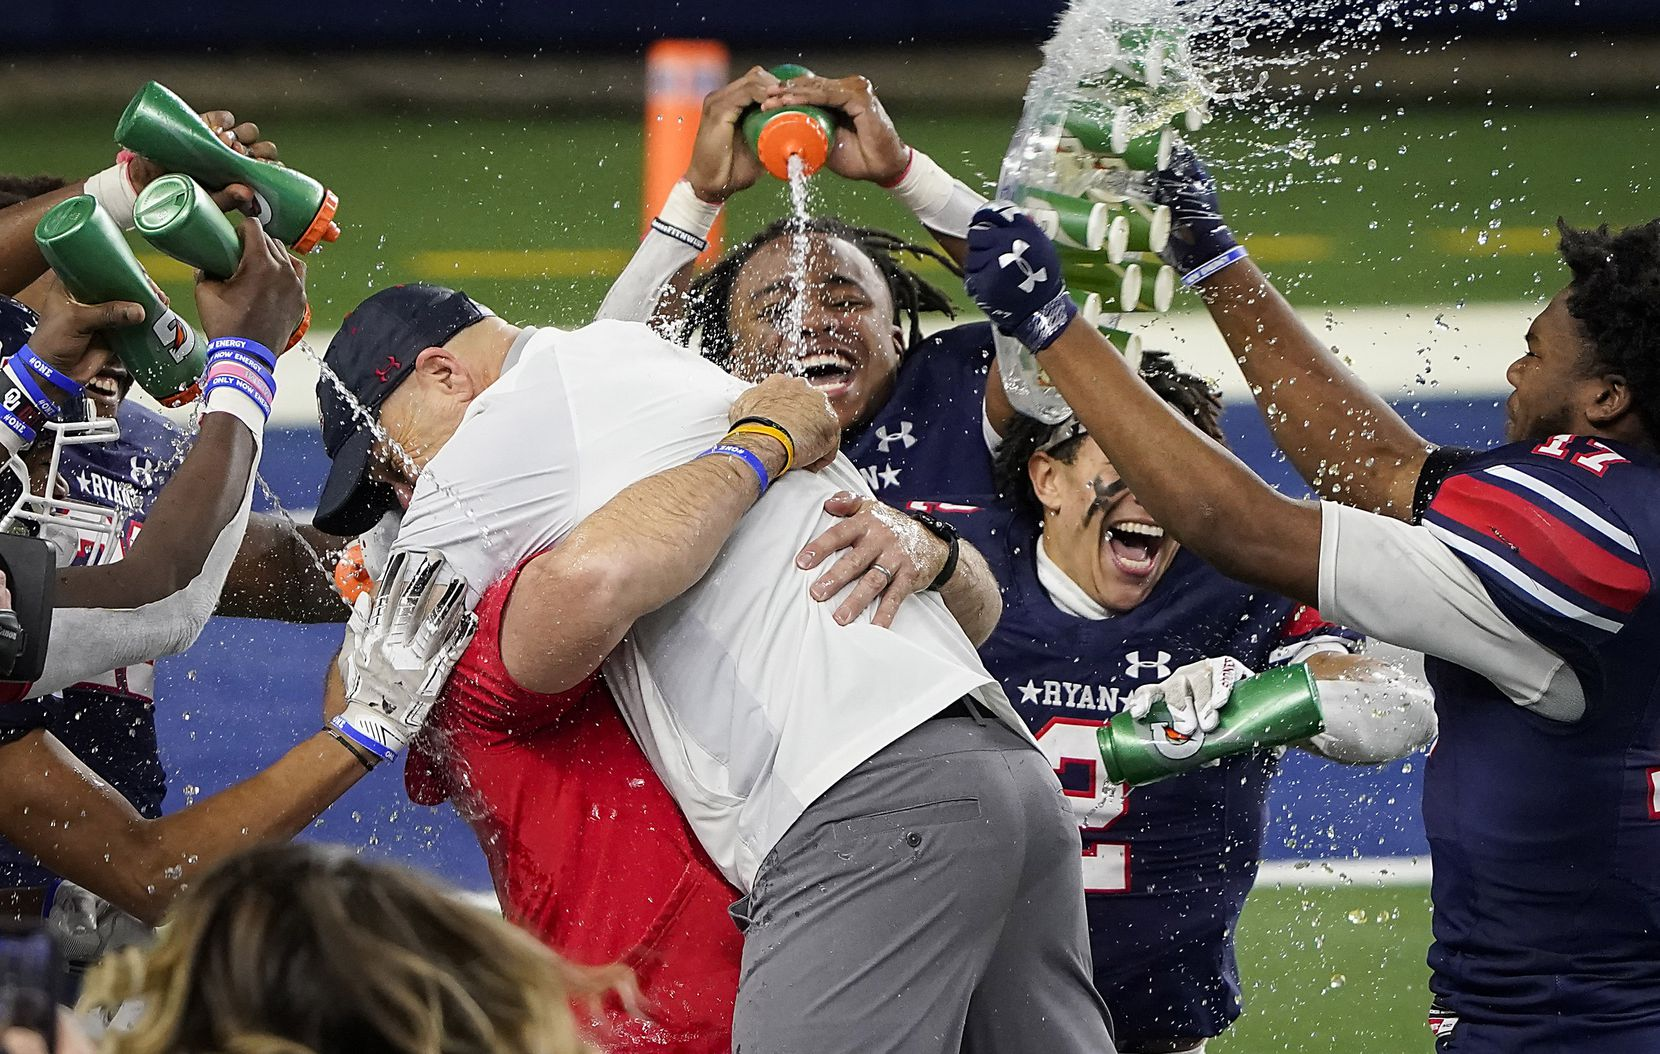 Denton Ryan head coach Dave Henigan hugs assistant coach Shane Tolleson as they are doused by their players in celebration of a 59-14 victory over Cedar Park to win the Class 5A Division I state football championship game at AT&T Stadium on Friday, Jan. 15, 2021, in Arlington, Texas. (Smiley N. Pool/The Dallas Morning News)